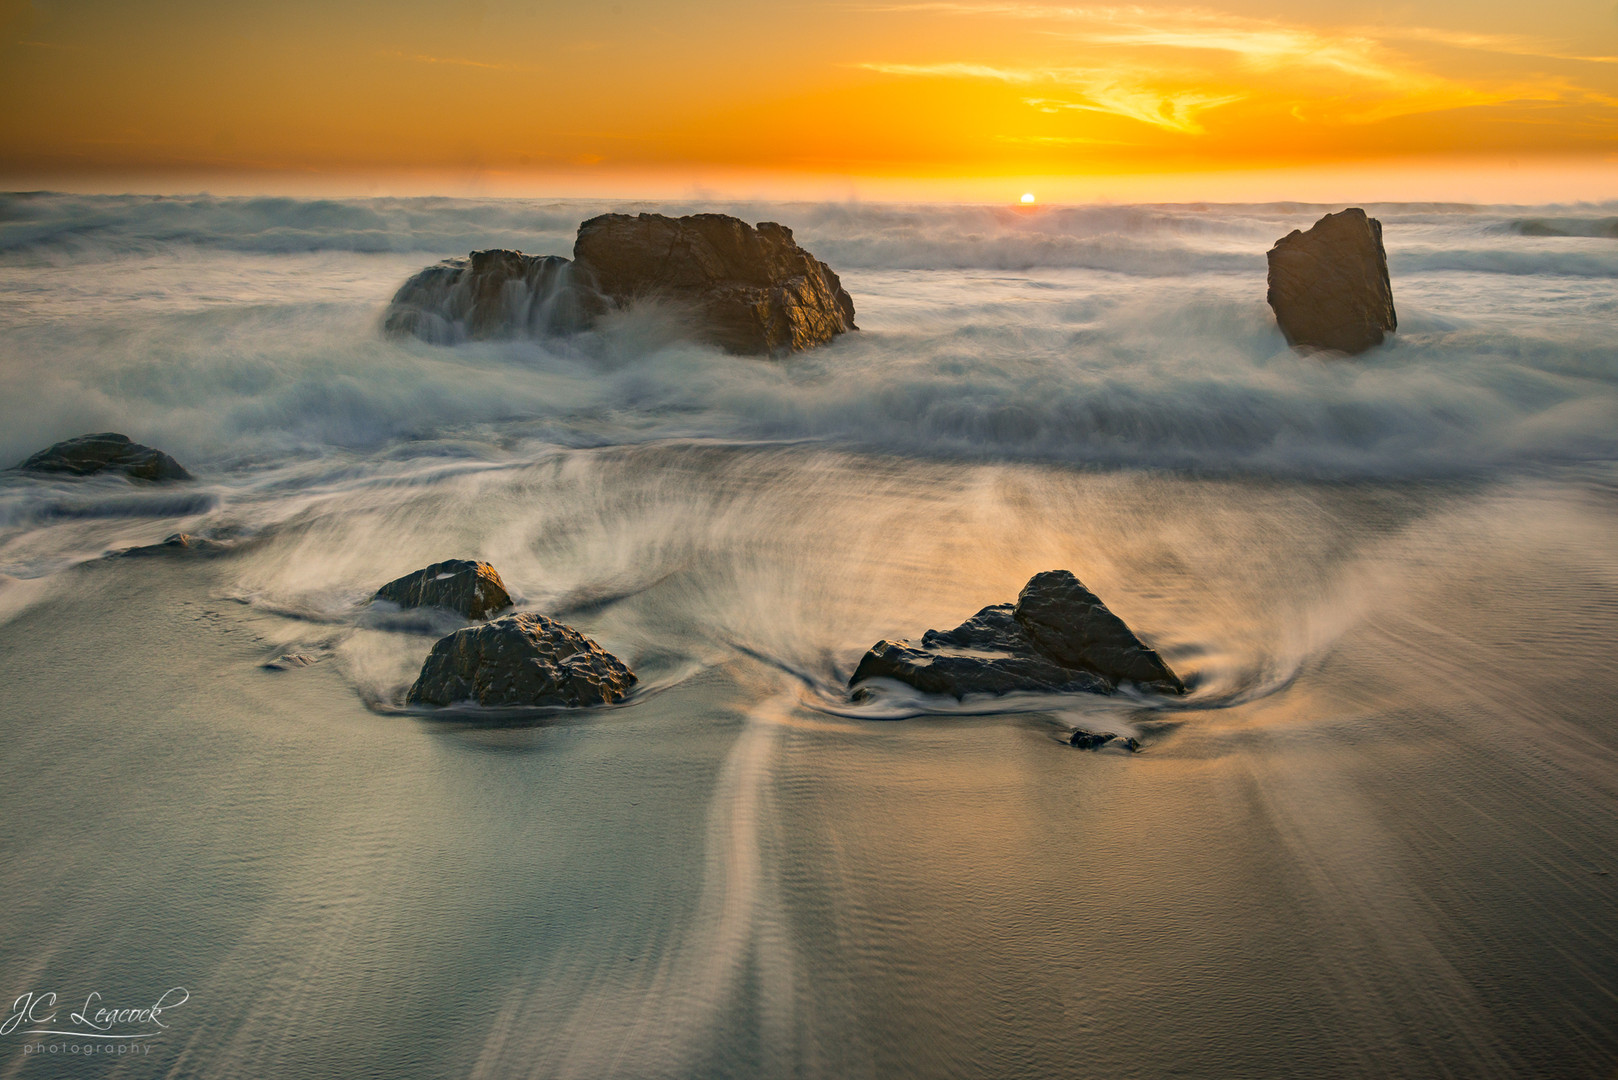 Surf amongst the rocks, at sunset, Westport, California